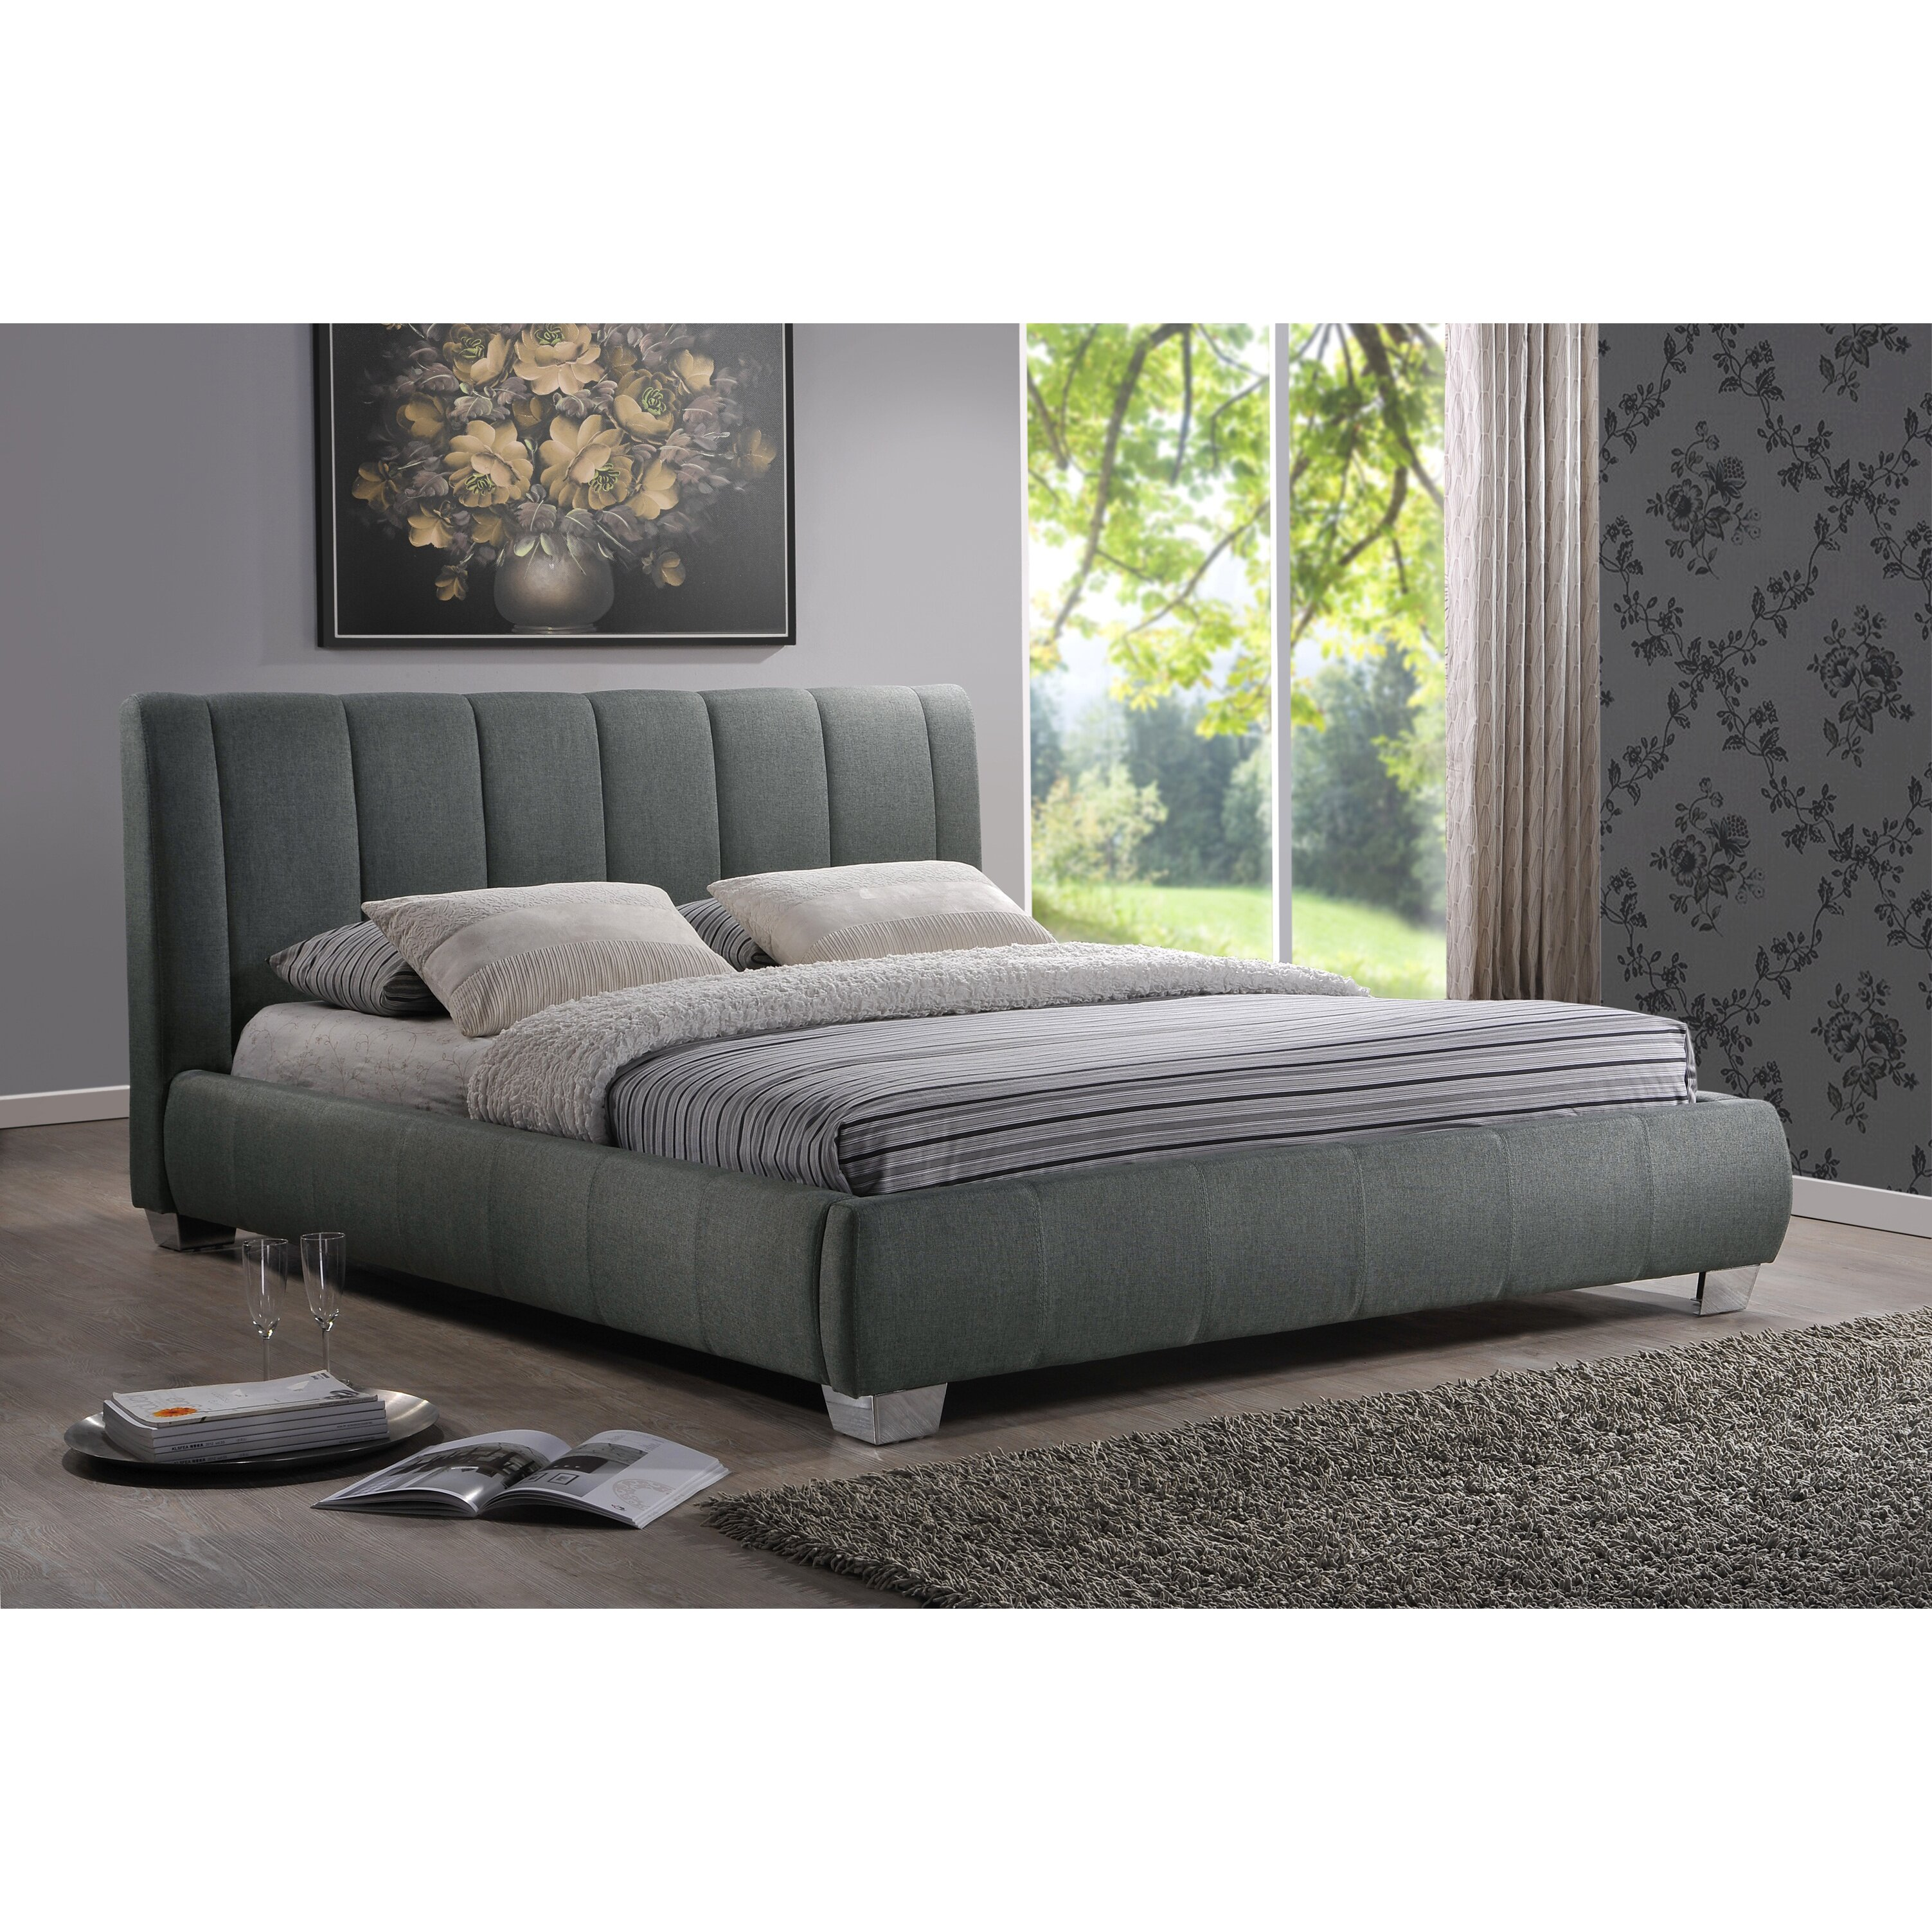 baxton studio bed interiors baxton studio upholstered 10515